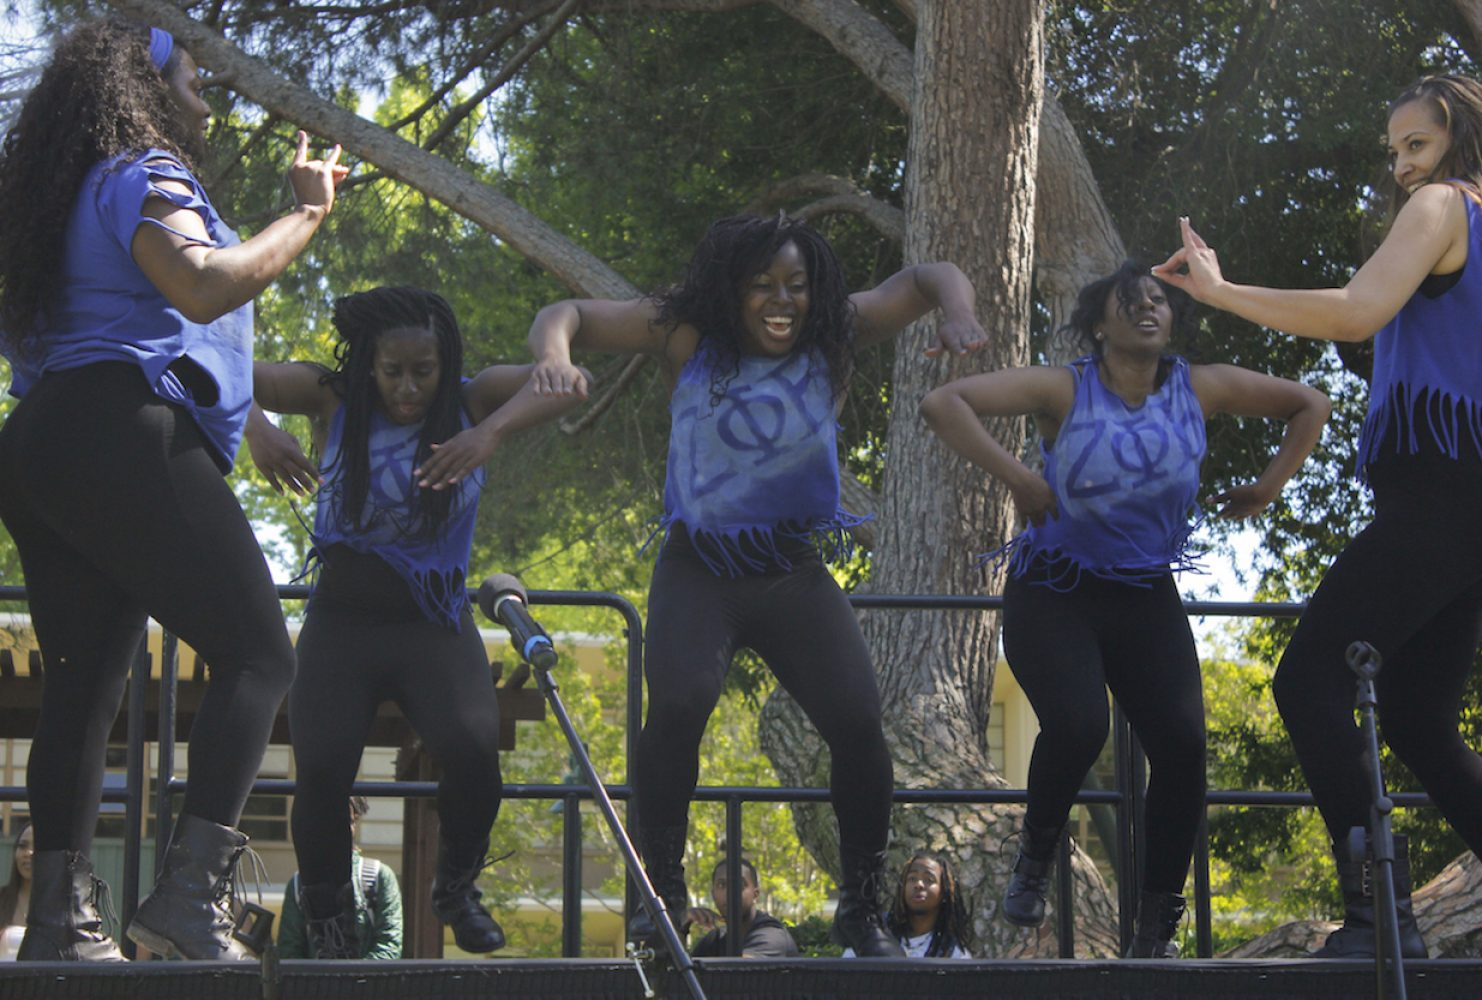 Sorority Zeta Phi Beta members perform step routines on stage during Sacramento State's first Black Family Day event on Saturday in the Main Quad. (Photo by Rin Carbin)